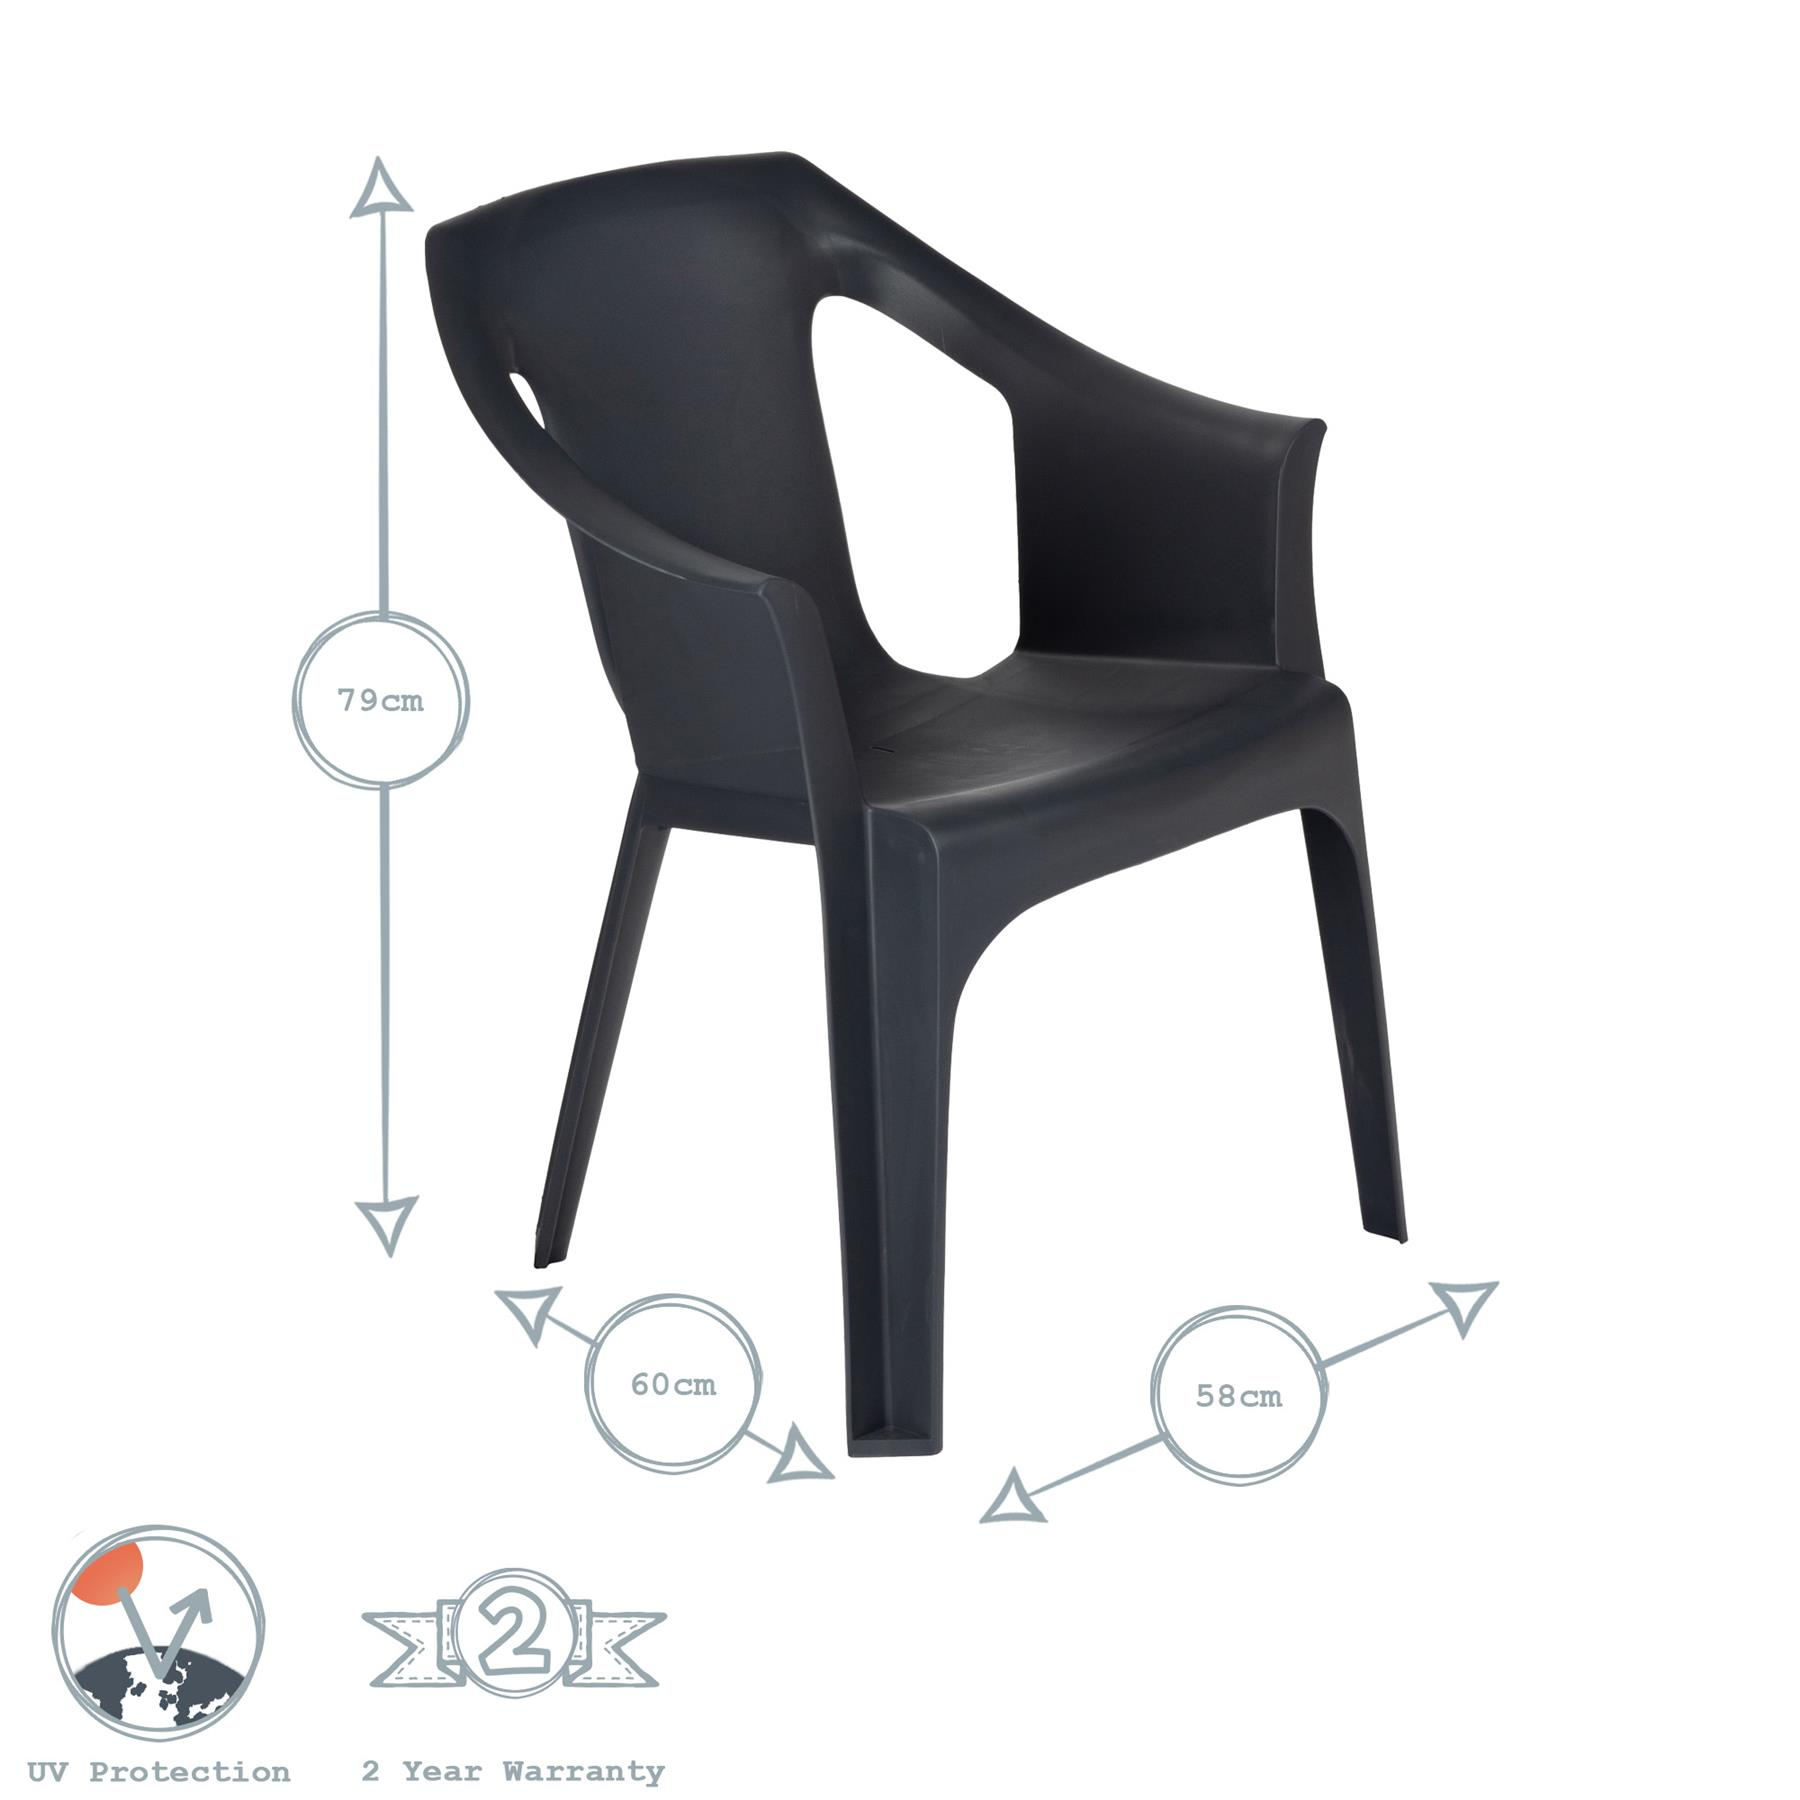 Garden Dining Chairs Resol Palma Outdoor Plastic Armchair BBQ Seating White x4